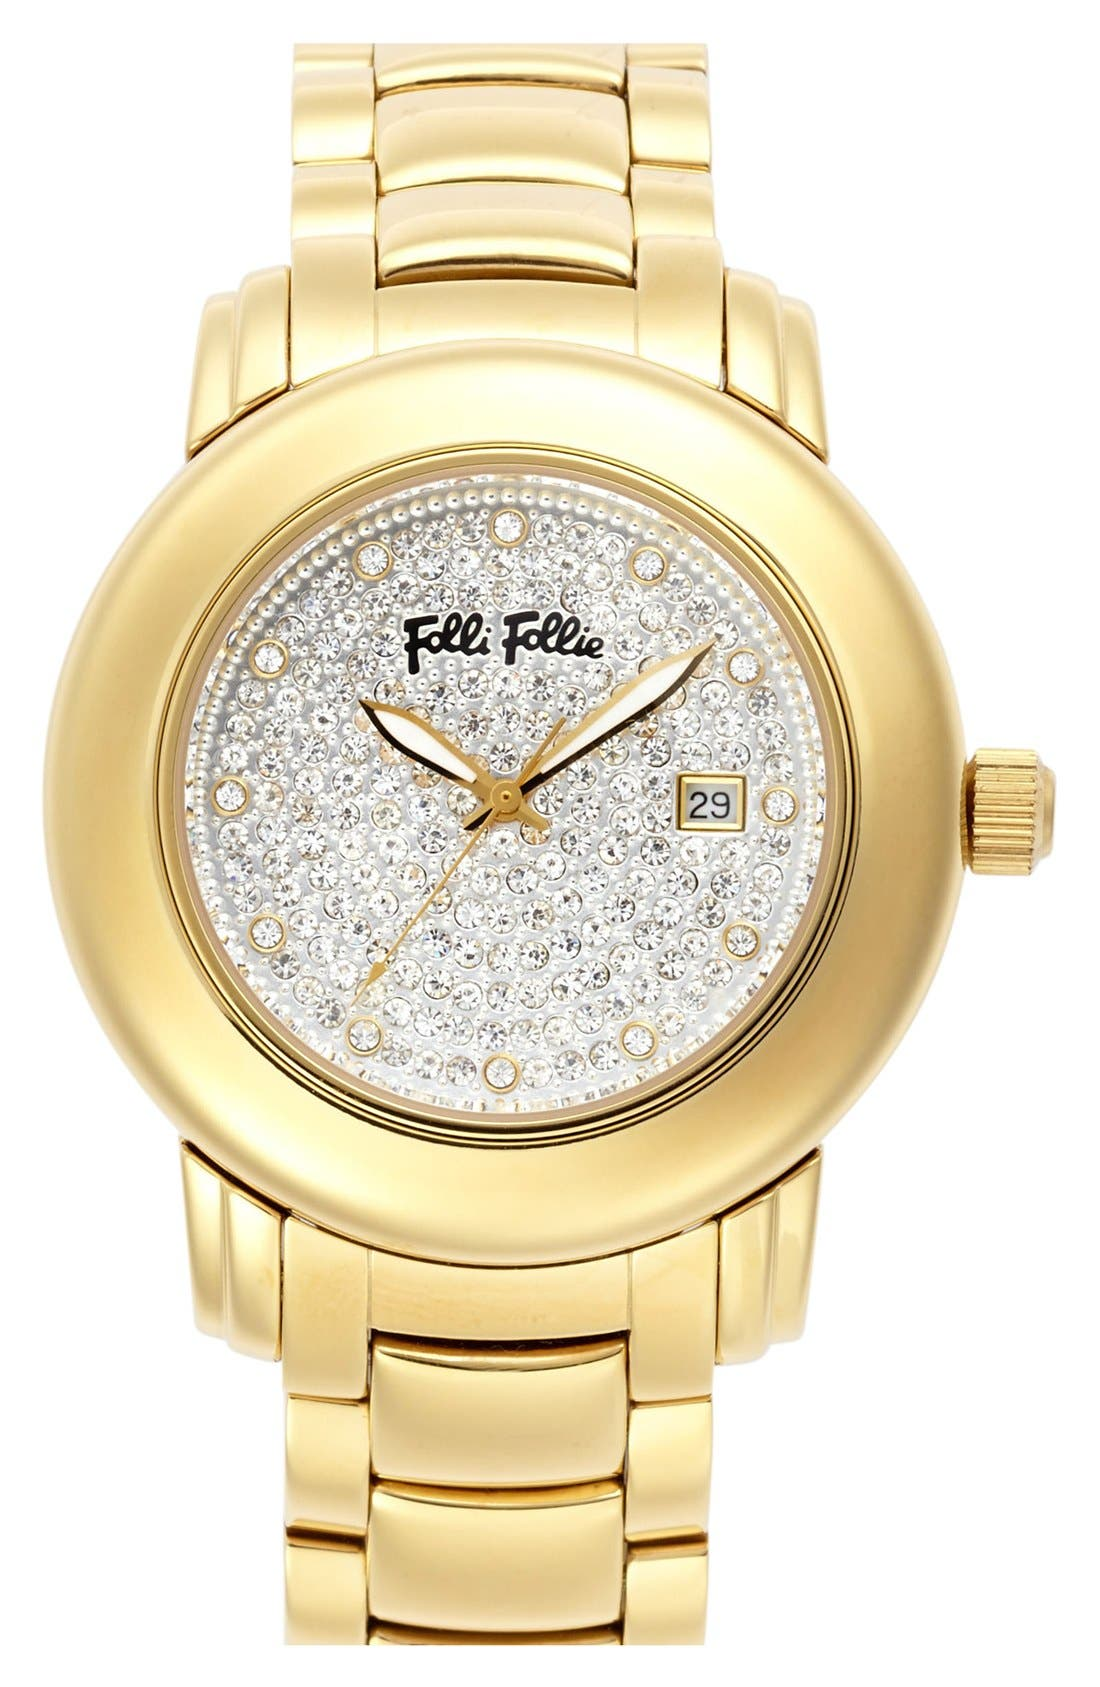 Alternate Image 1 Selected - Folli Follie 'Urban Spin' Crystal Dial Bracelet Watch, 43mm